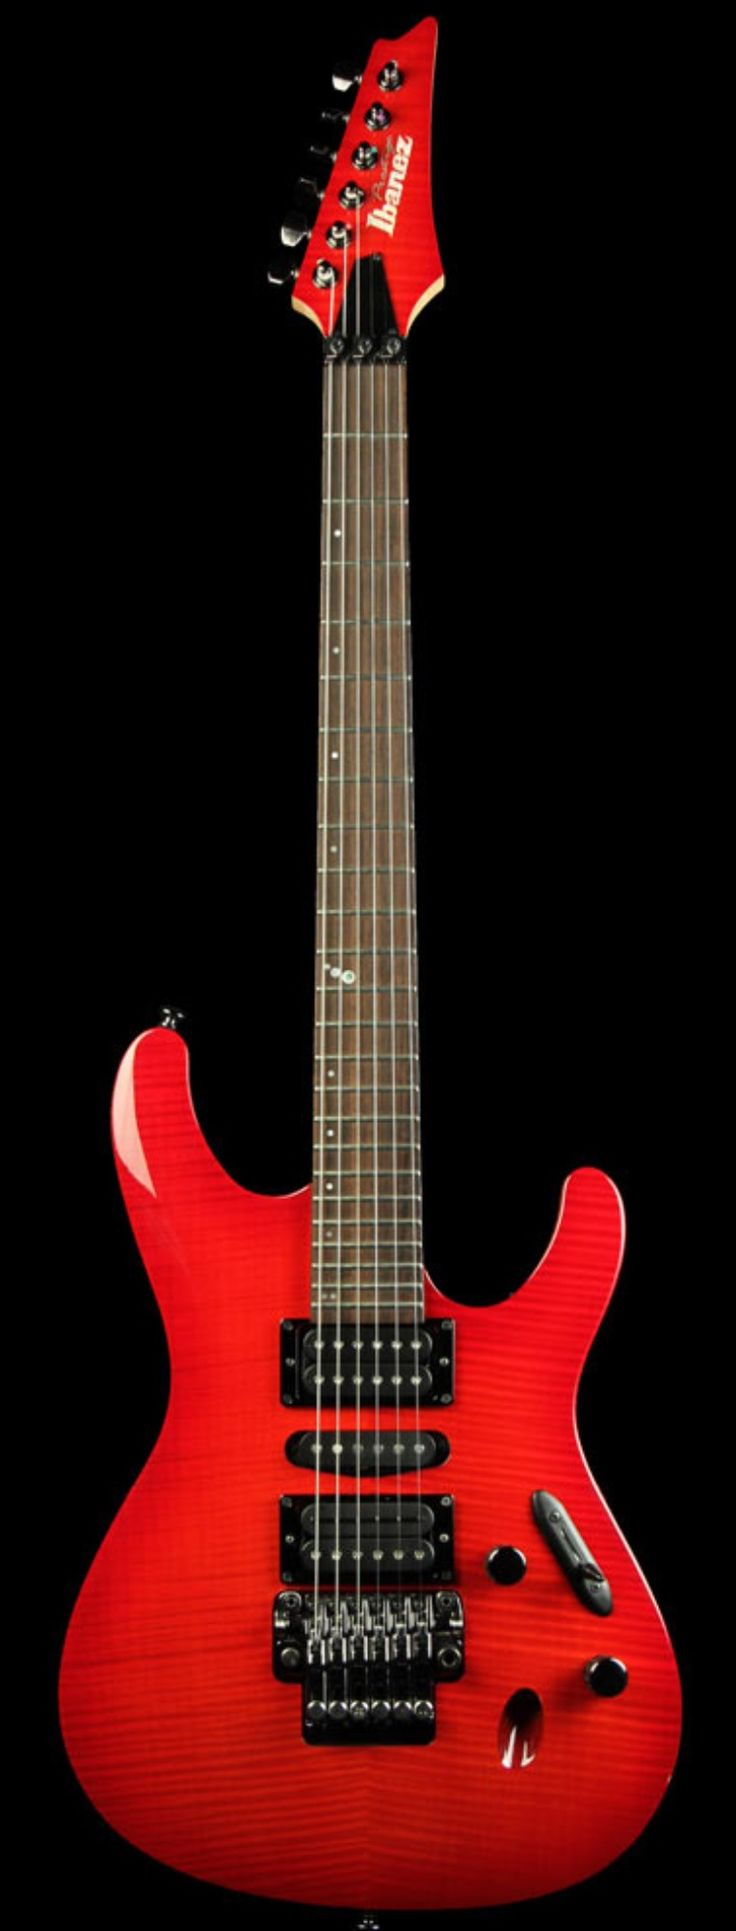 IBANEZ Prestige S5470F Flamed Maple Top Electric Guitar Red Viking | The Music Zoo